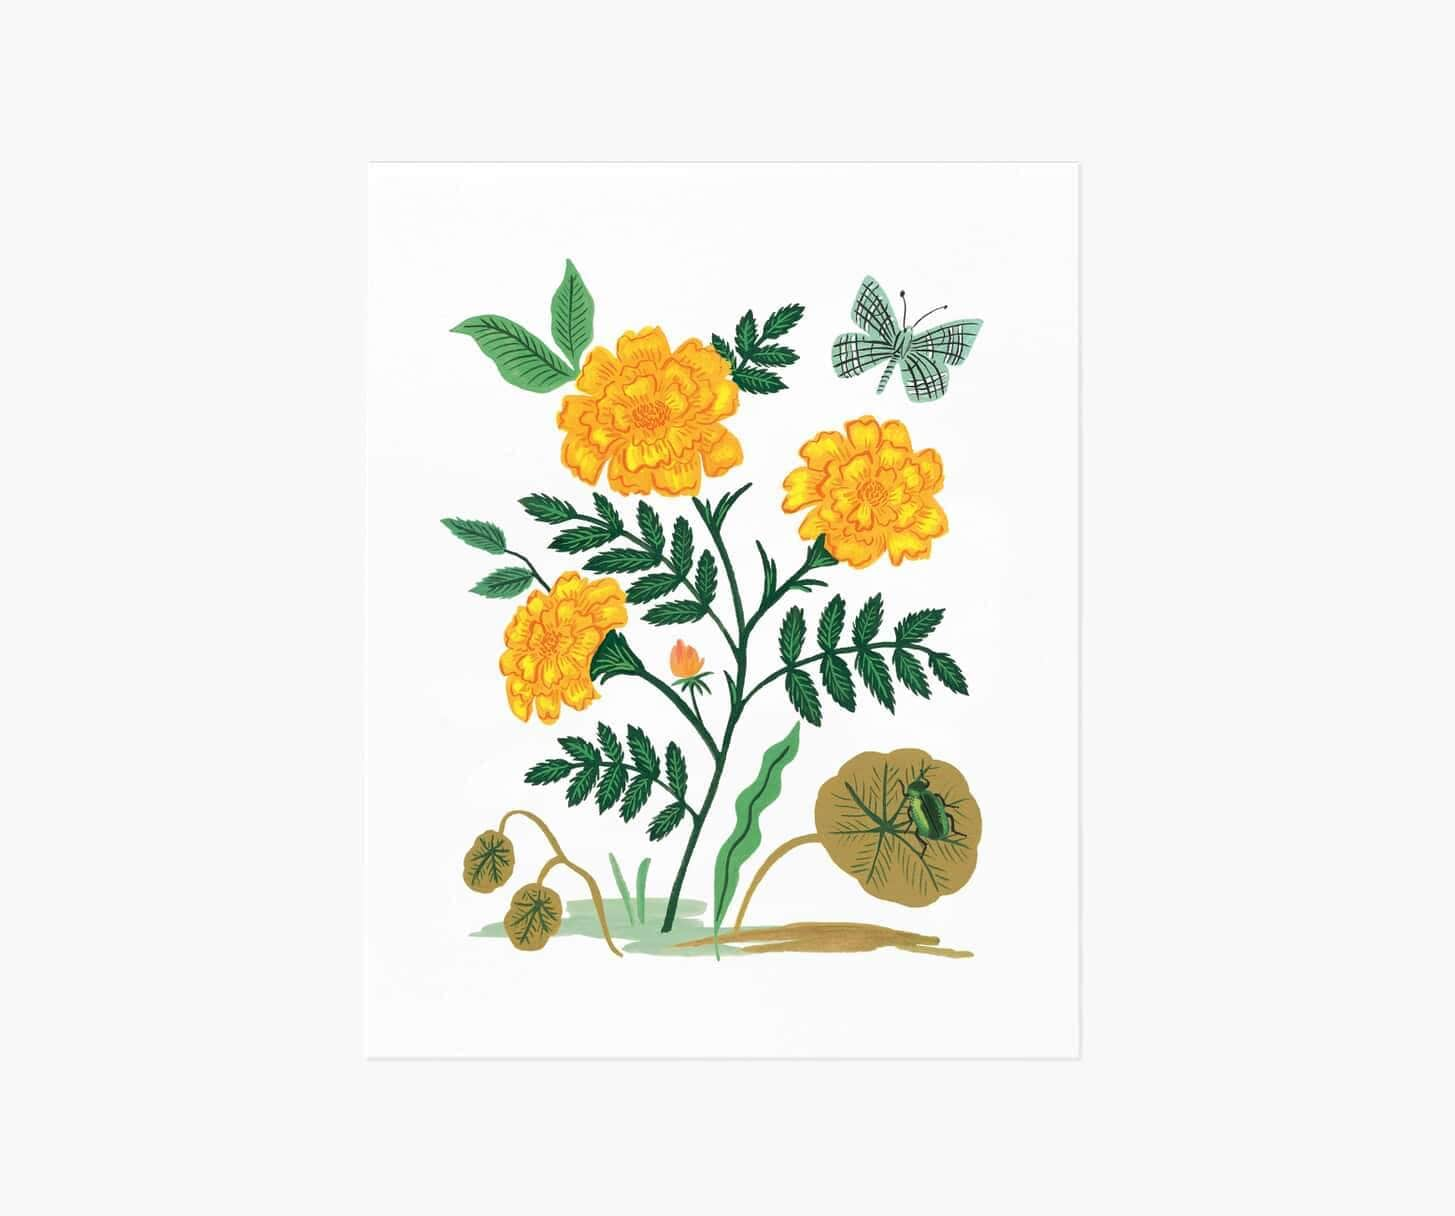 French Marigold Art Print 16x20